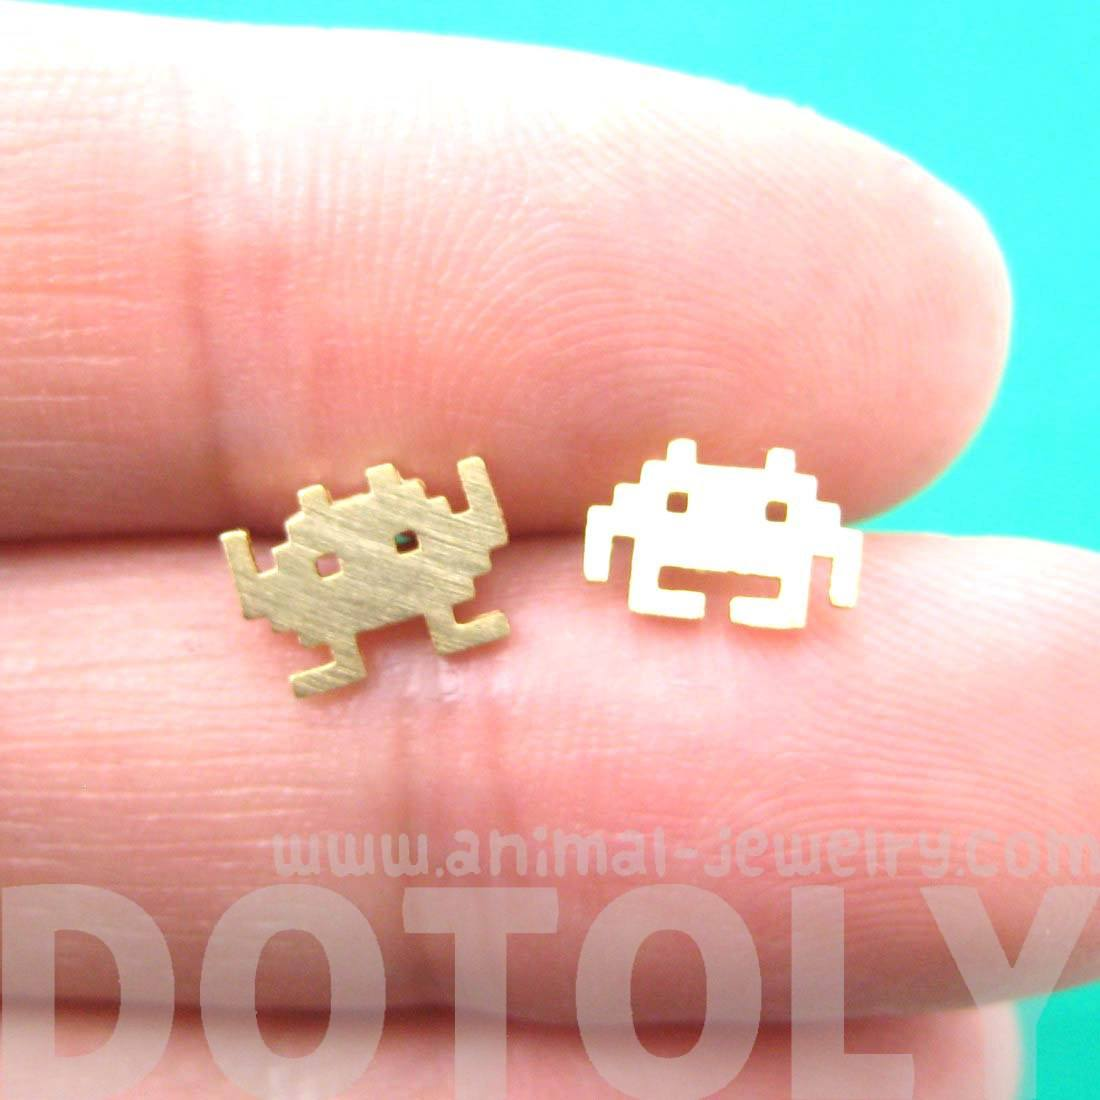 Atari Space Invaders Alien Pixel Arcade Themed Stud Earrings in Gold